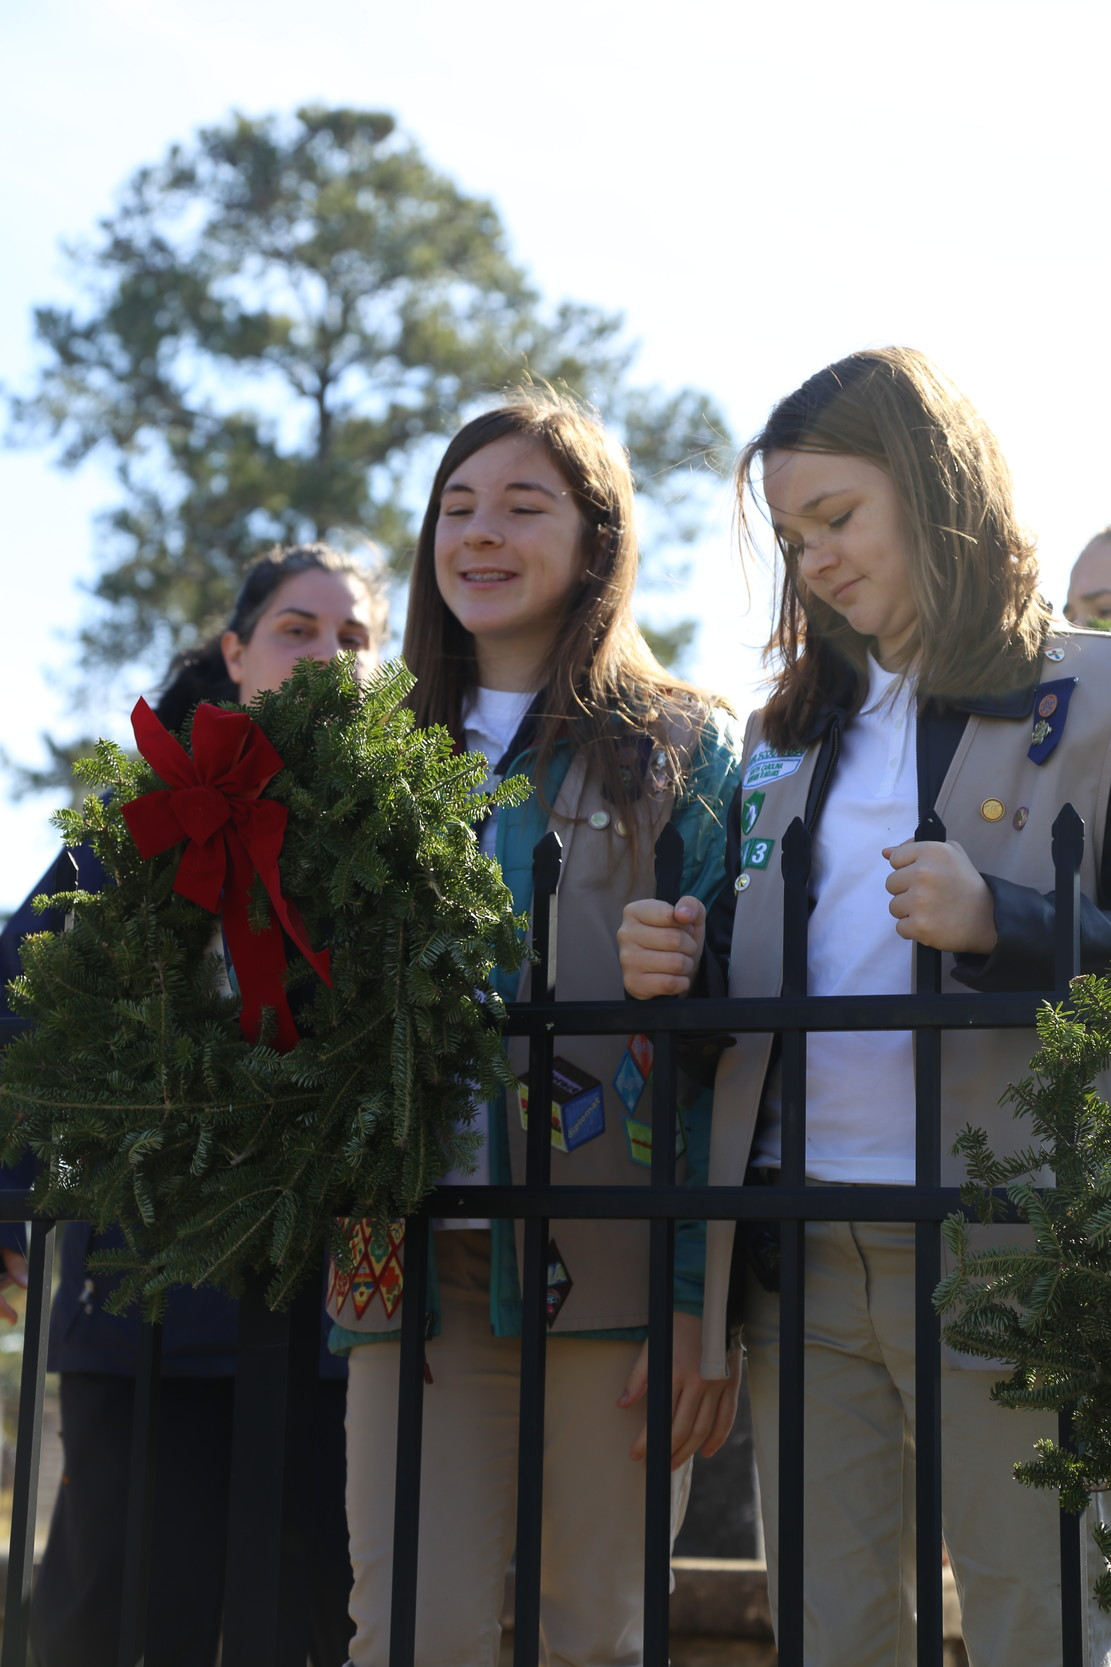 A member of a Girl Scout troop places a wreath on the fence of Sumter Cemetery.